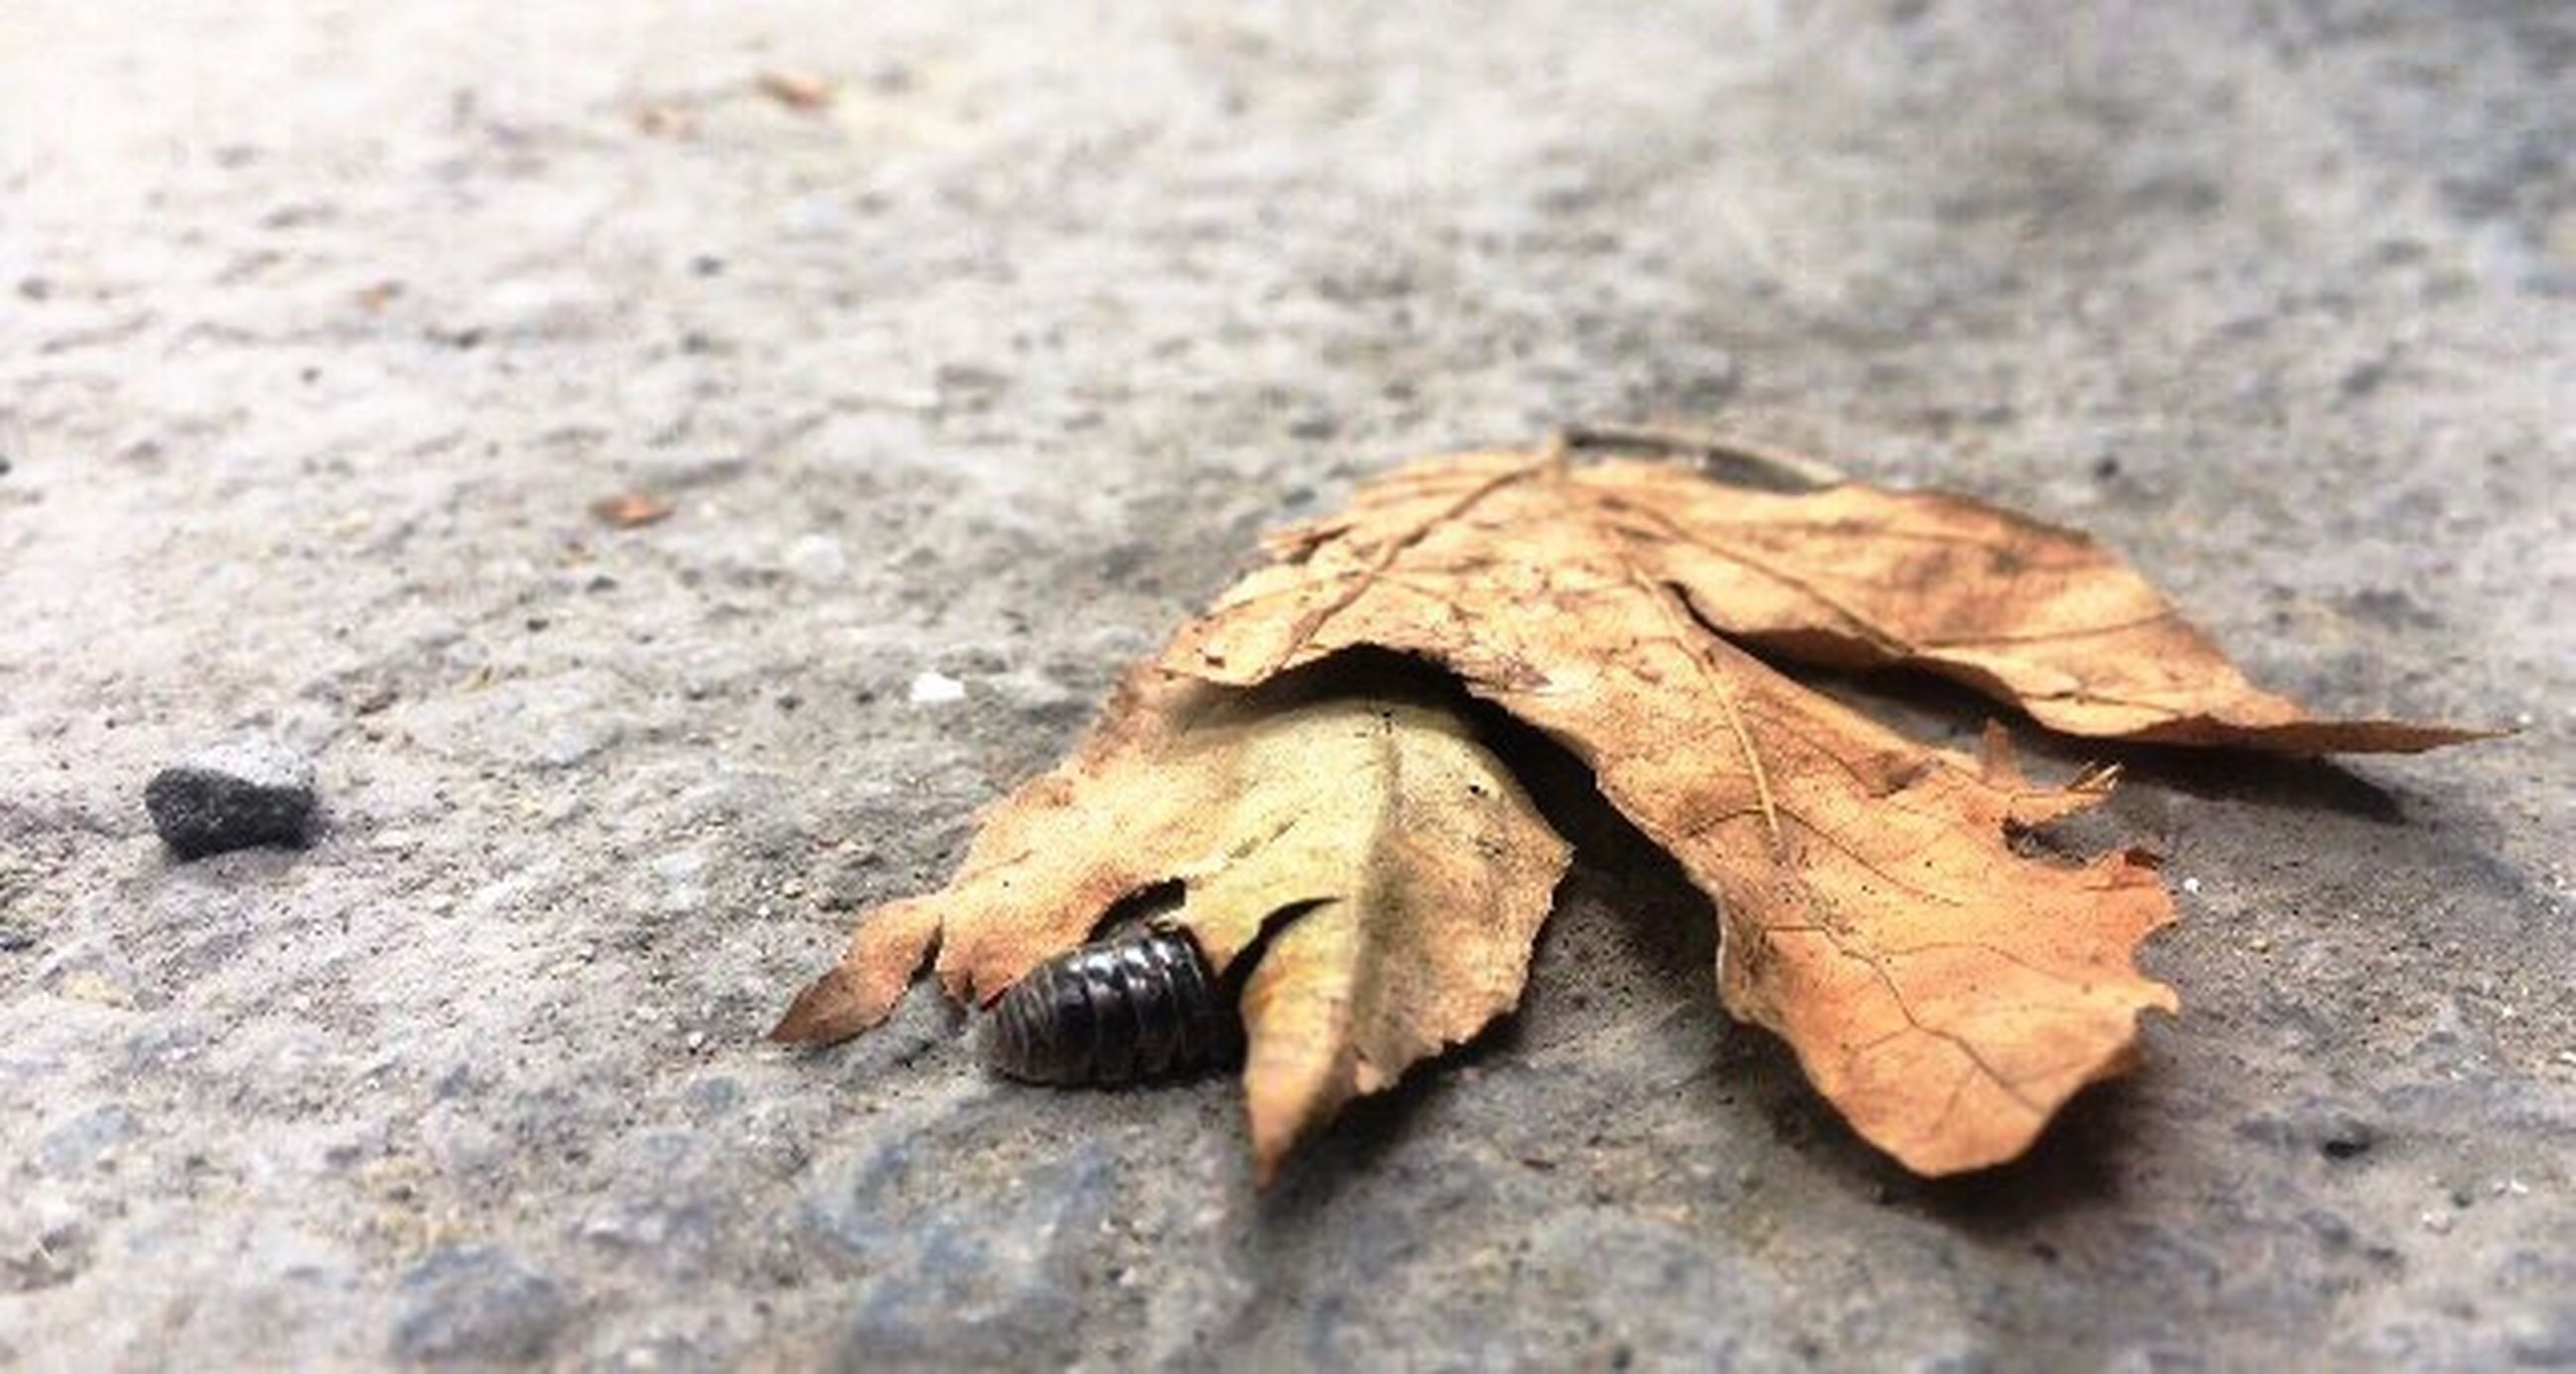 leaf, autumn, dry, change, outdoors, nature, day, one animal, no people, selective focus, animal themes, close-up, beauty in nature, maple